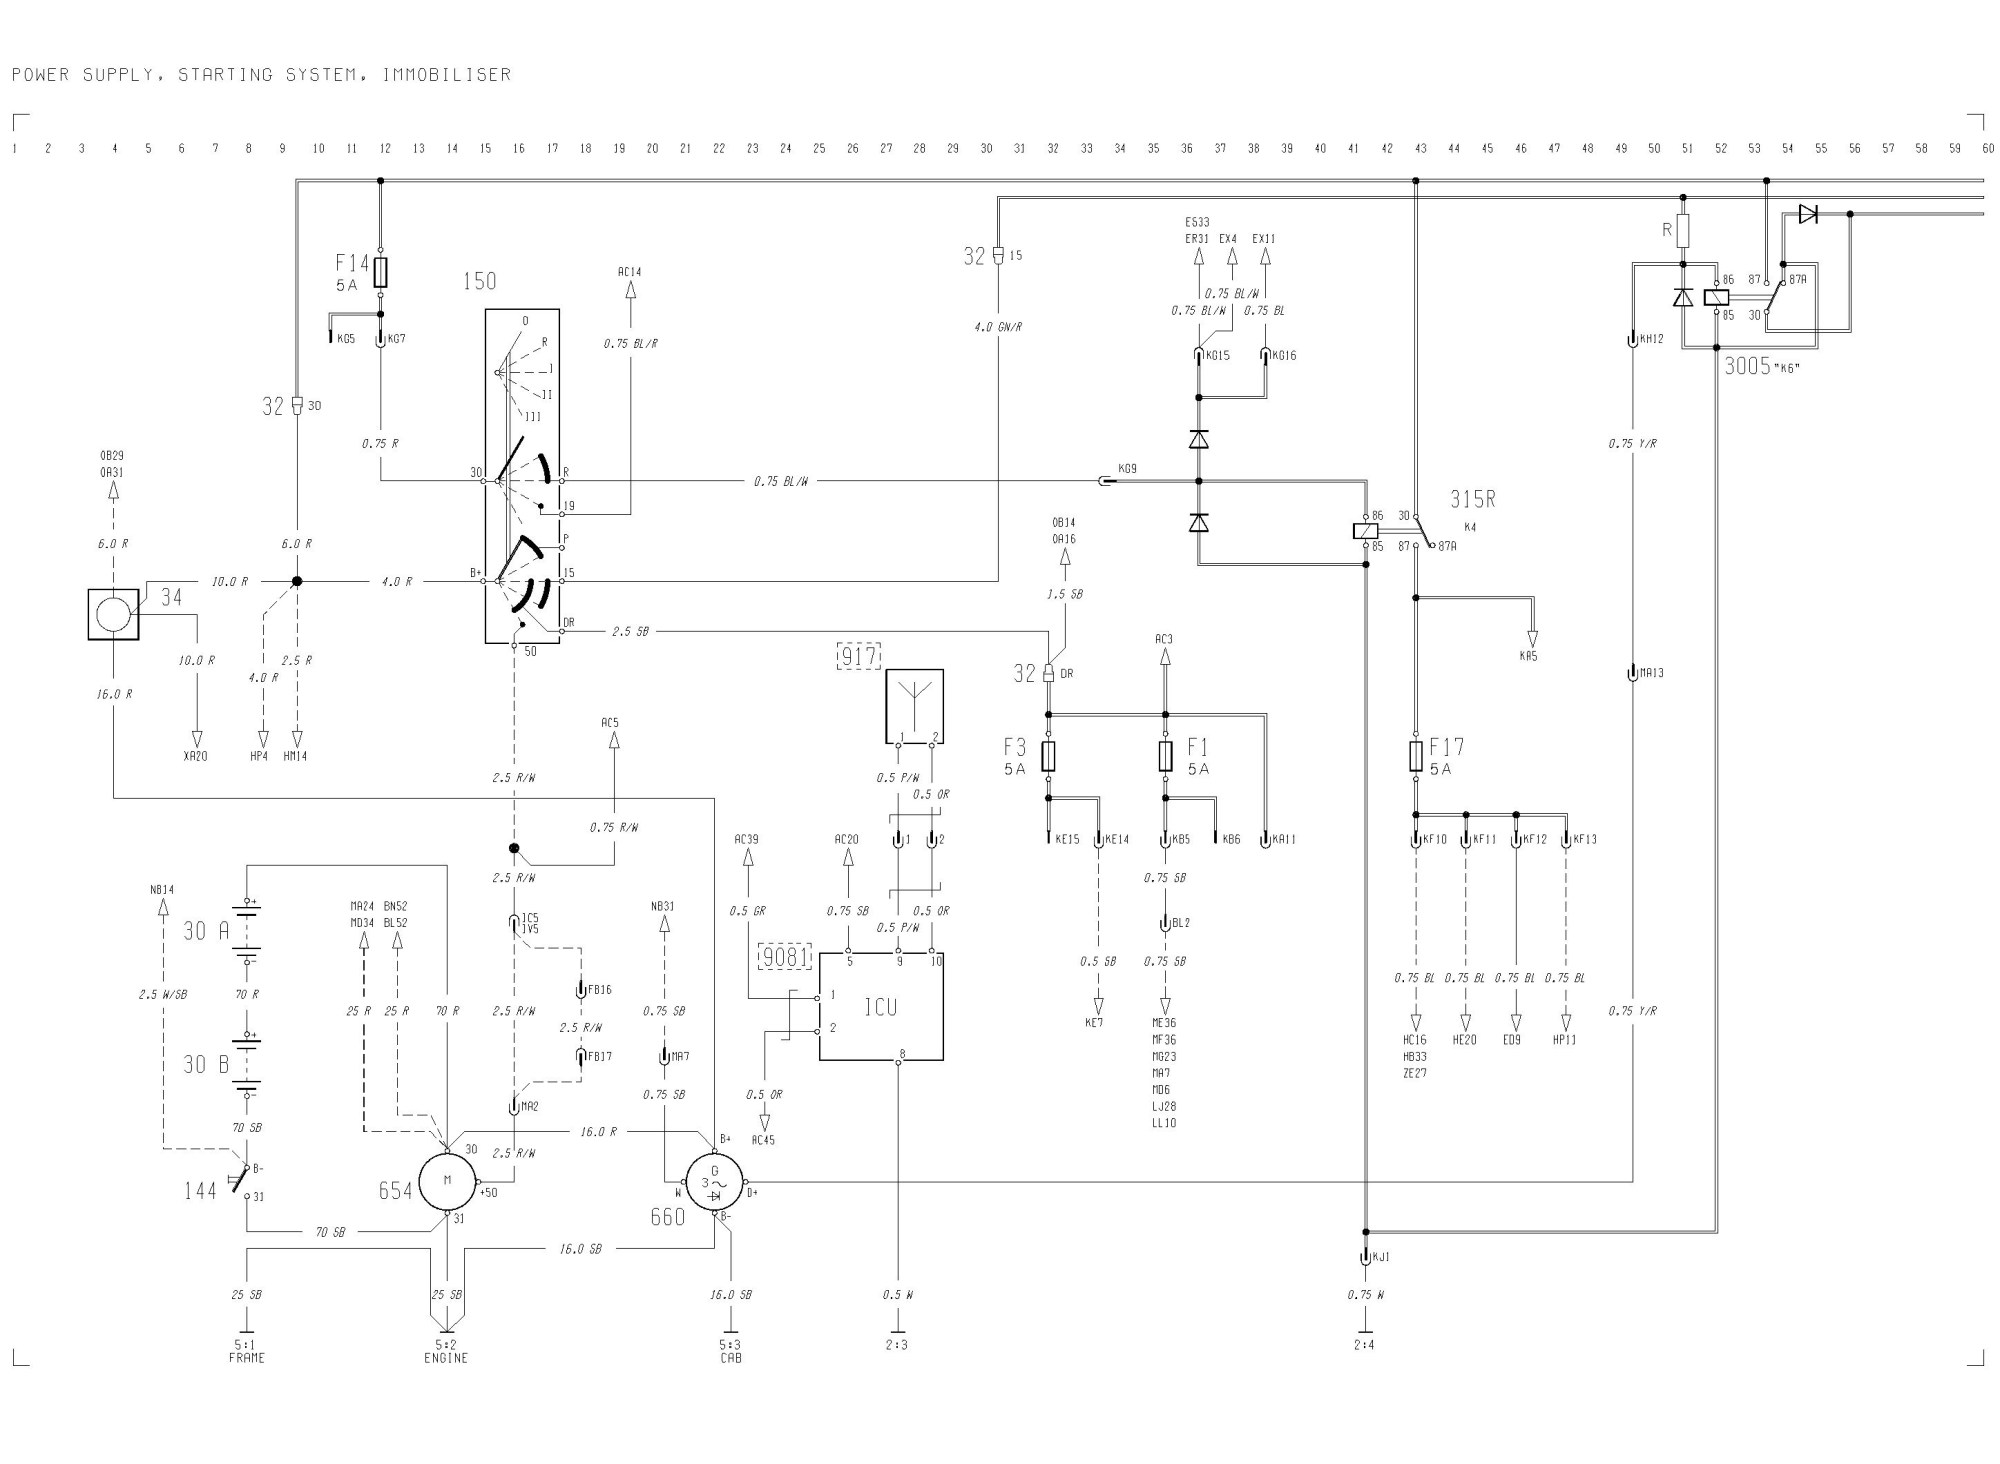 hight resolution of volvo fh fuse box diagram wiring libraryvolvo fh fuse box diagram